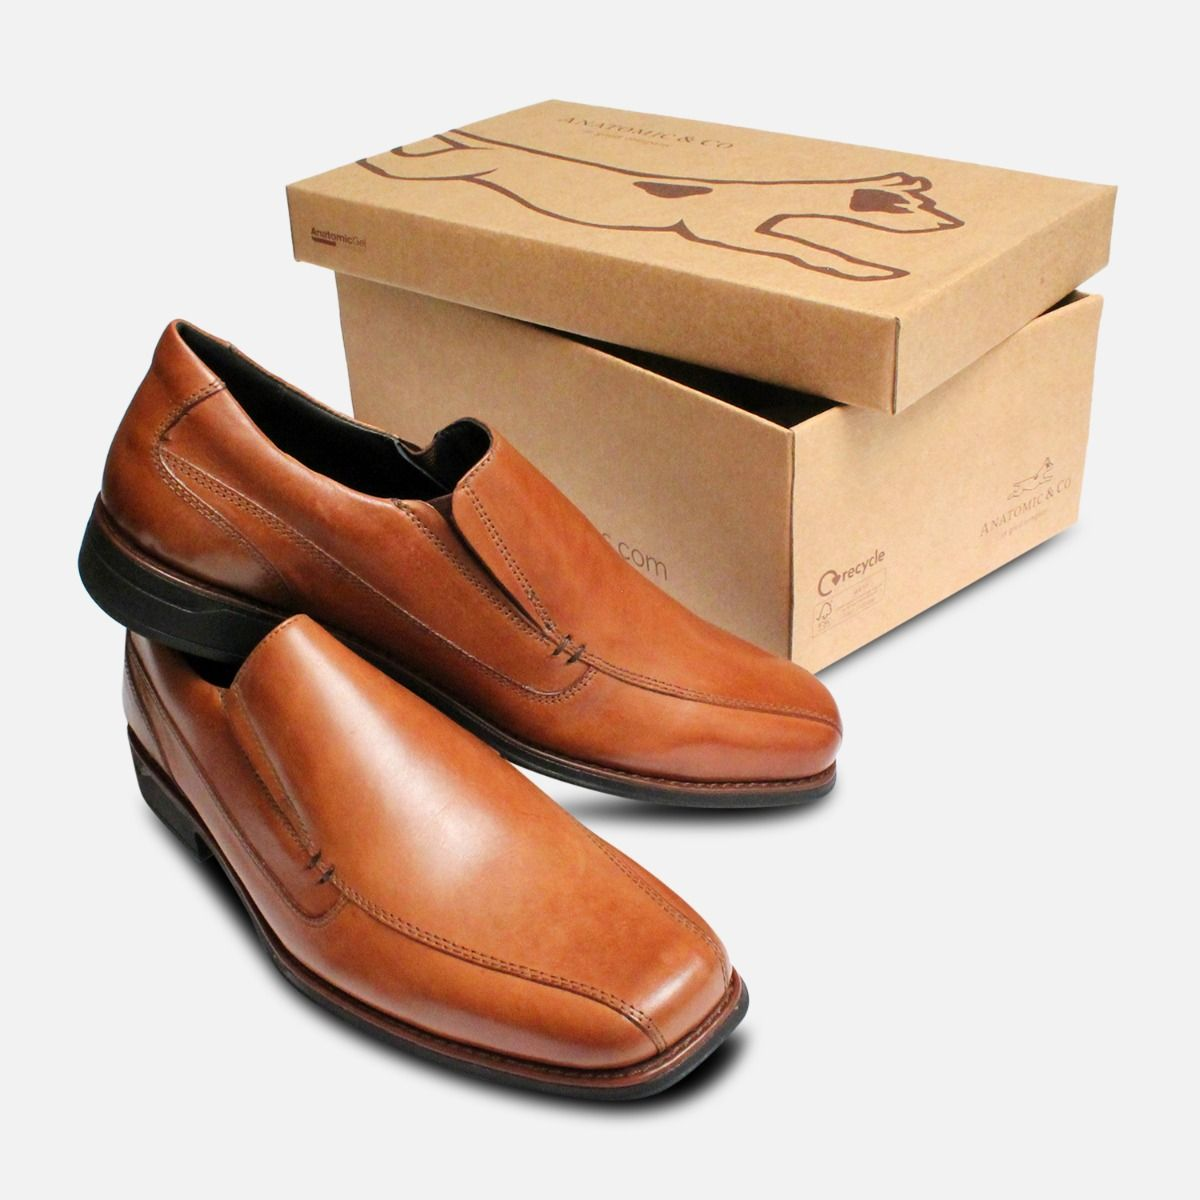 Square Toe Slip On Loafers in Tan by Anatomic Shoes